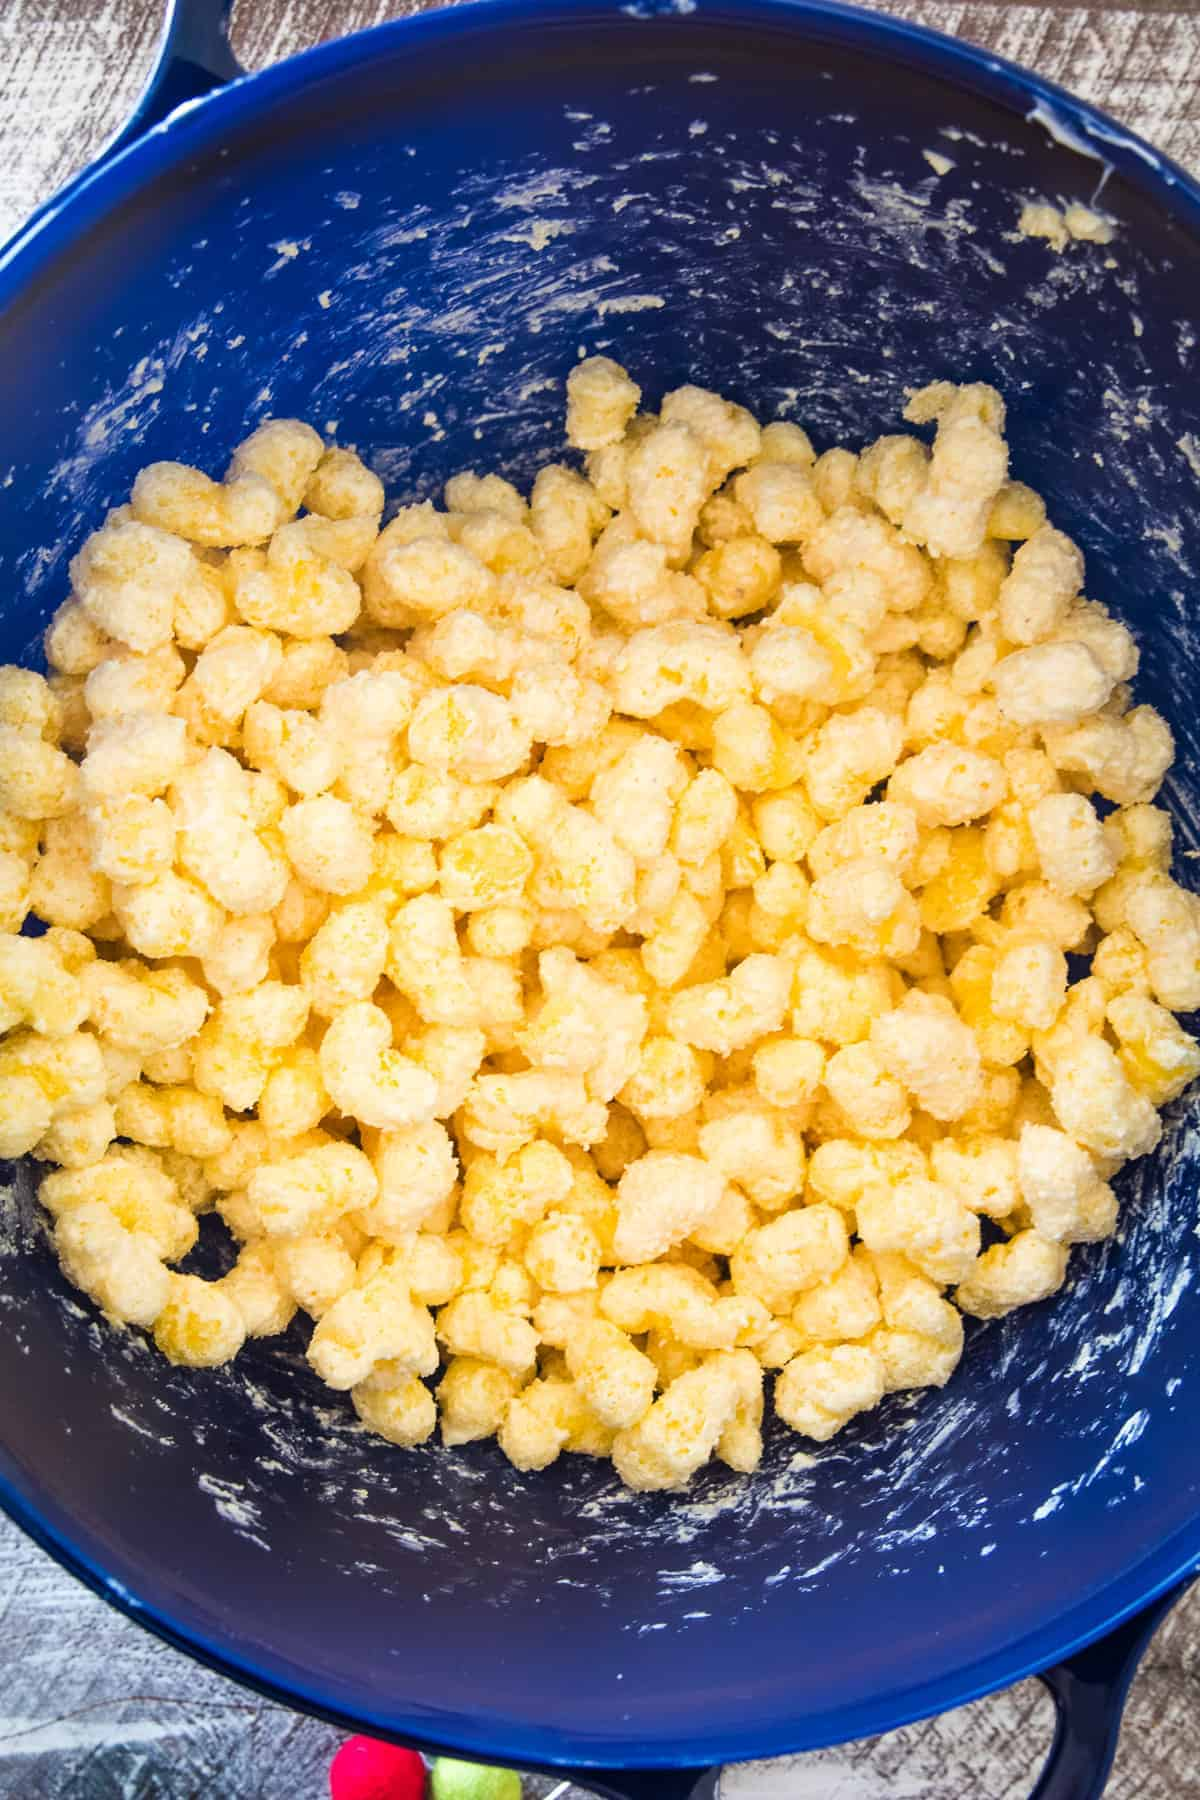 Blue bowl with puffcorn being mixed with white chocolate chips